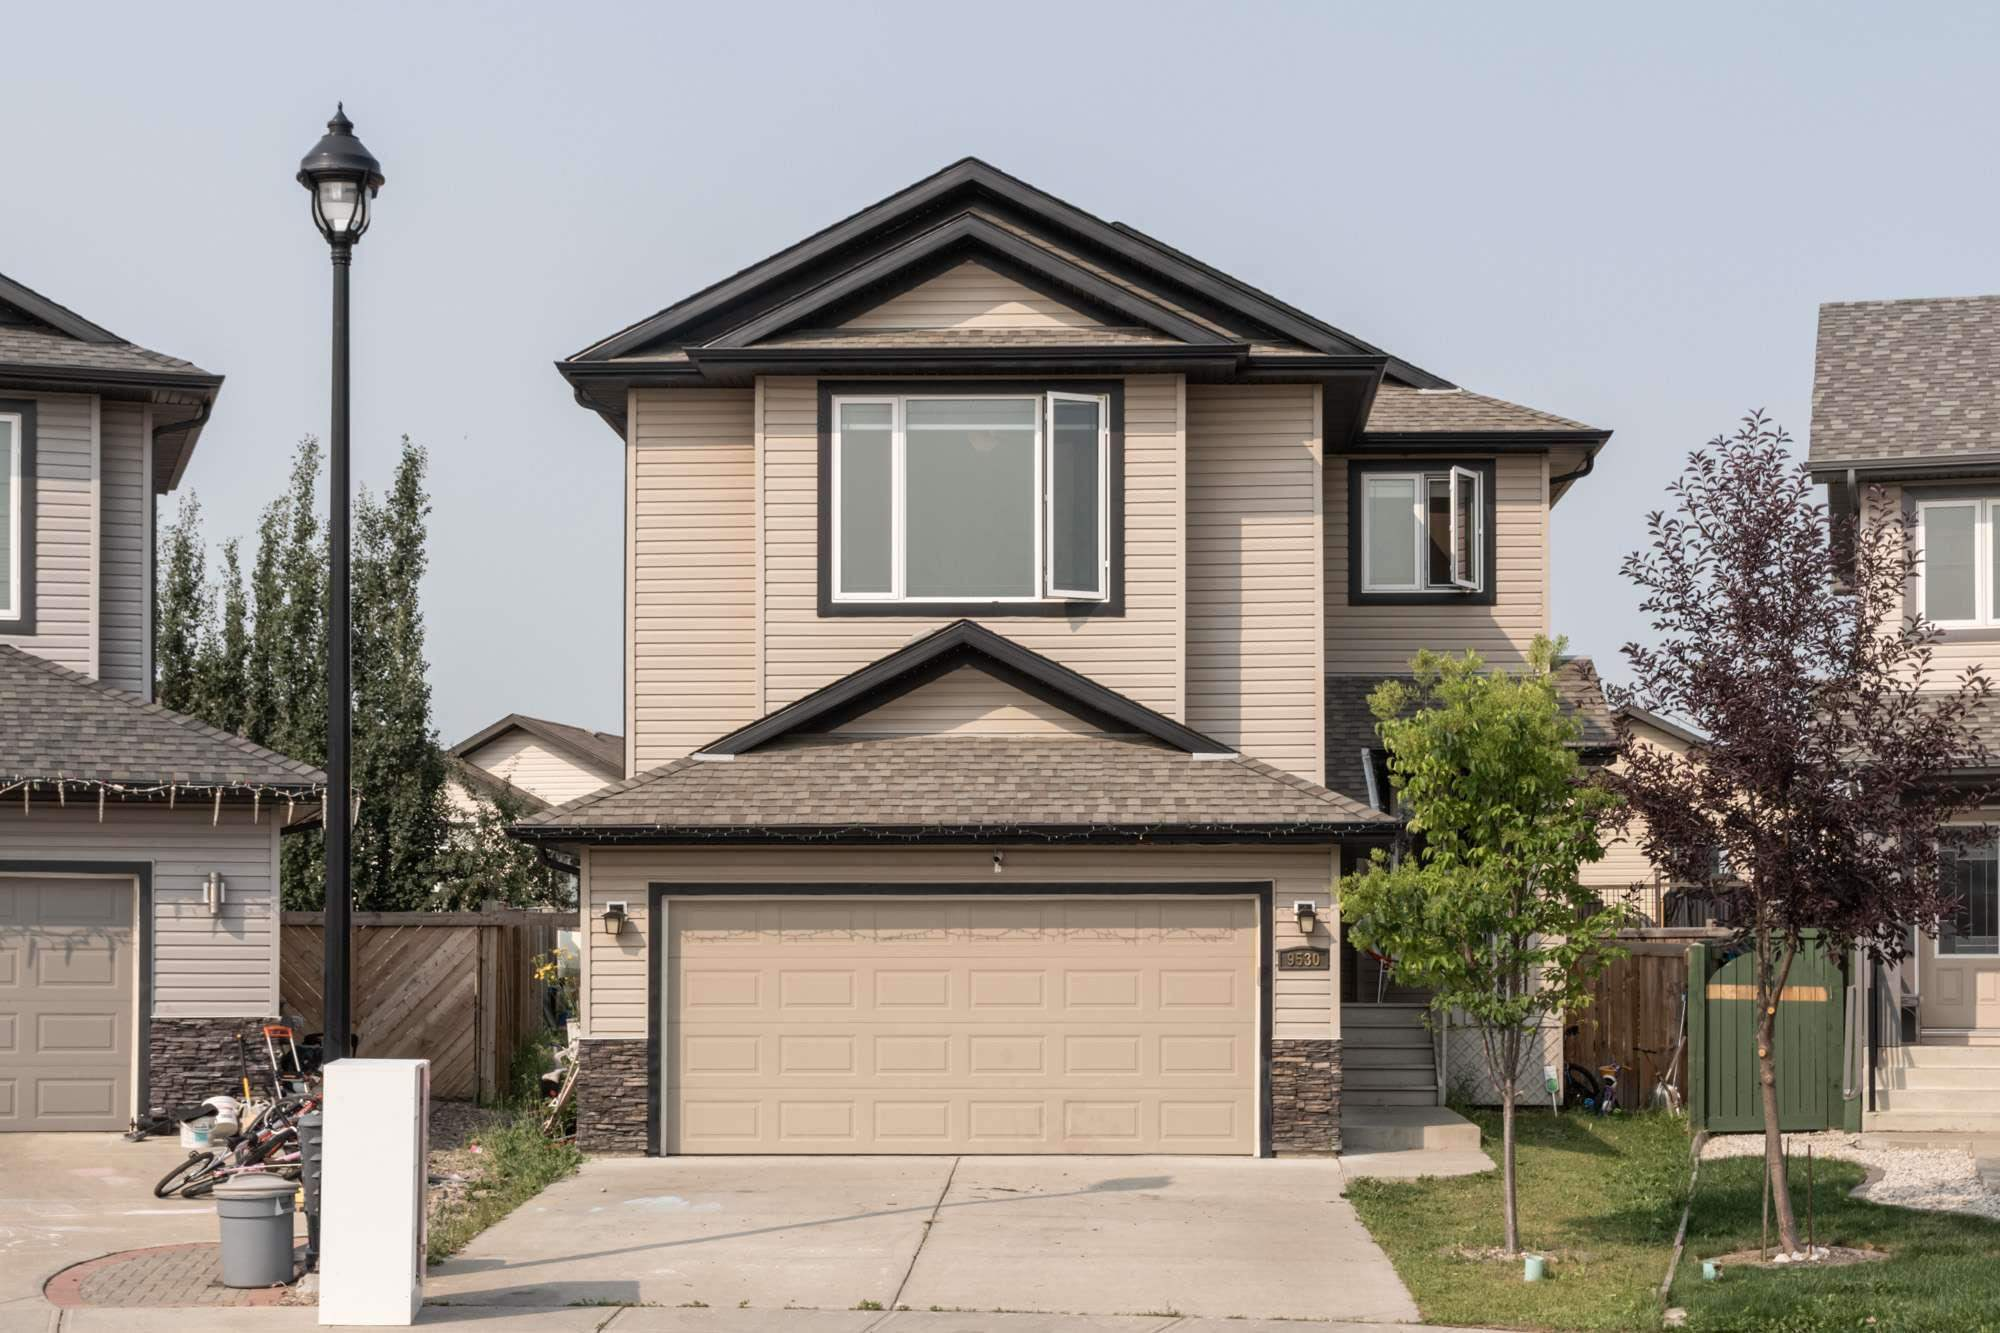 WAIT! STOP! This is the one you've been waiting for. Ideally located in a CUL-DE-SAC on a LARGE PIE SHAPED LOT this well laid out 2 storey home is beckoning for a new family to settle in. Great floor plan & upgraded in a quiet cul-de-sac close to school & transit. With 2300SF above grade, main floor den, walk through pantry, and to-die-for master bedroom - prepare to fall in love. Features hardwood and tile throughout the main floor plus plush upgraded newer carpet on the 2nd level. MASSIVE BONUS ROOM upstairs. 9' ceilings, granite, extra & oversized windows throughout plus UNSPOILED BASEMENT WITH HEATED FLOORS awaiting your finishing touch. This Webber Greens gem is walking distance to schools, parks, golf course, shopping & public transit. Stony Plain Road, Whitemud & Anthony Henday are a short drive and easily transport you anywhere in the city you need to go.